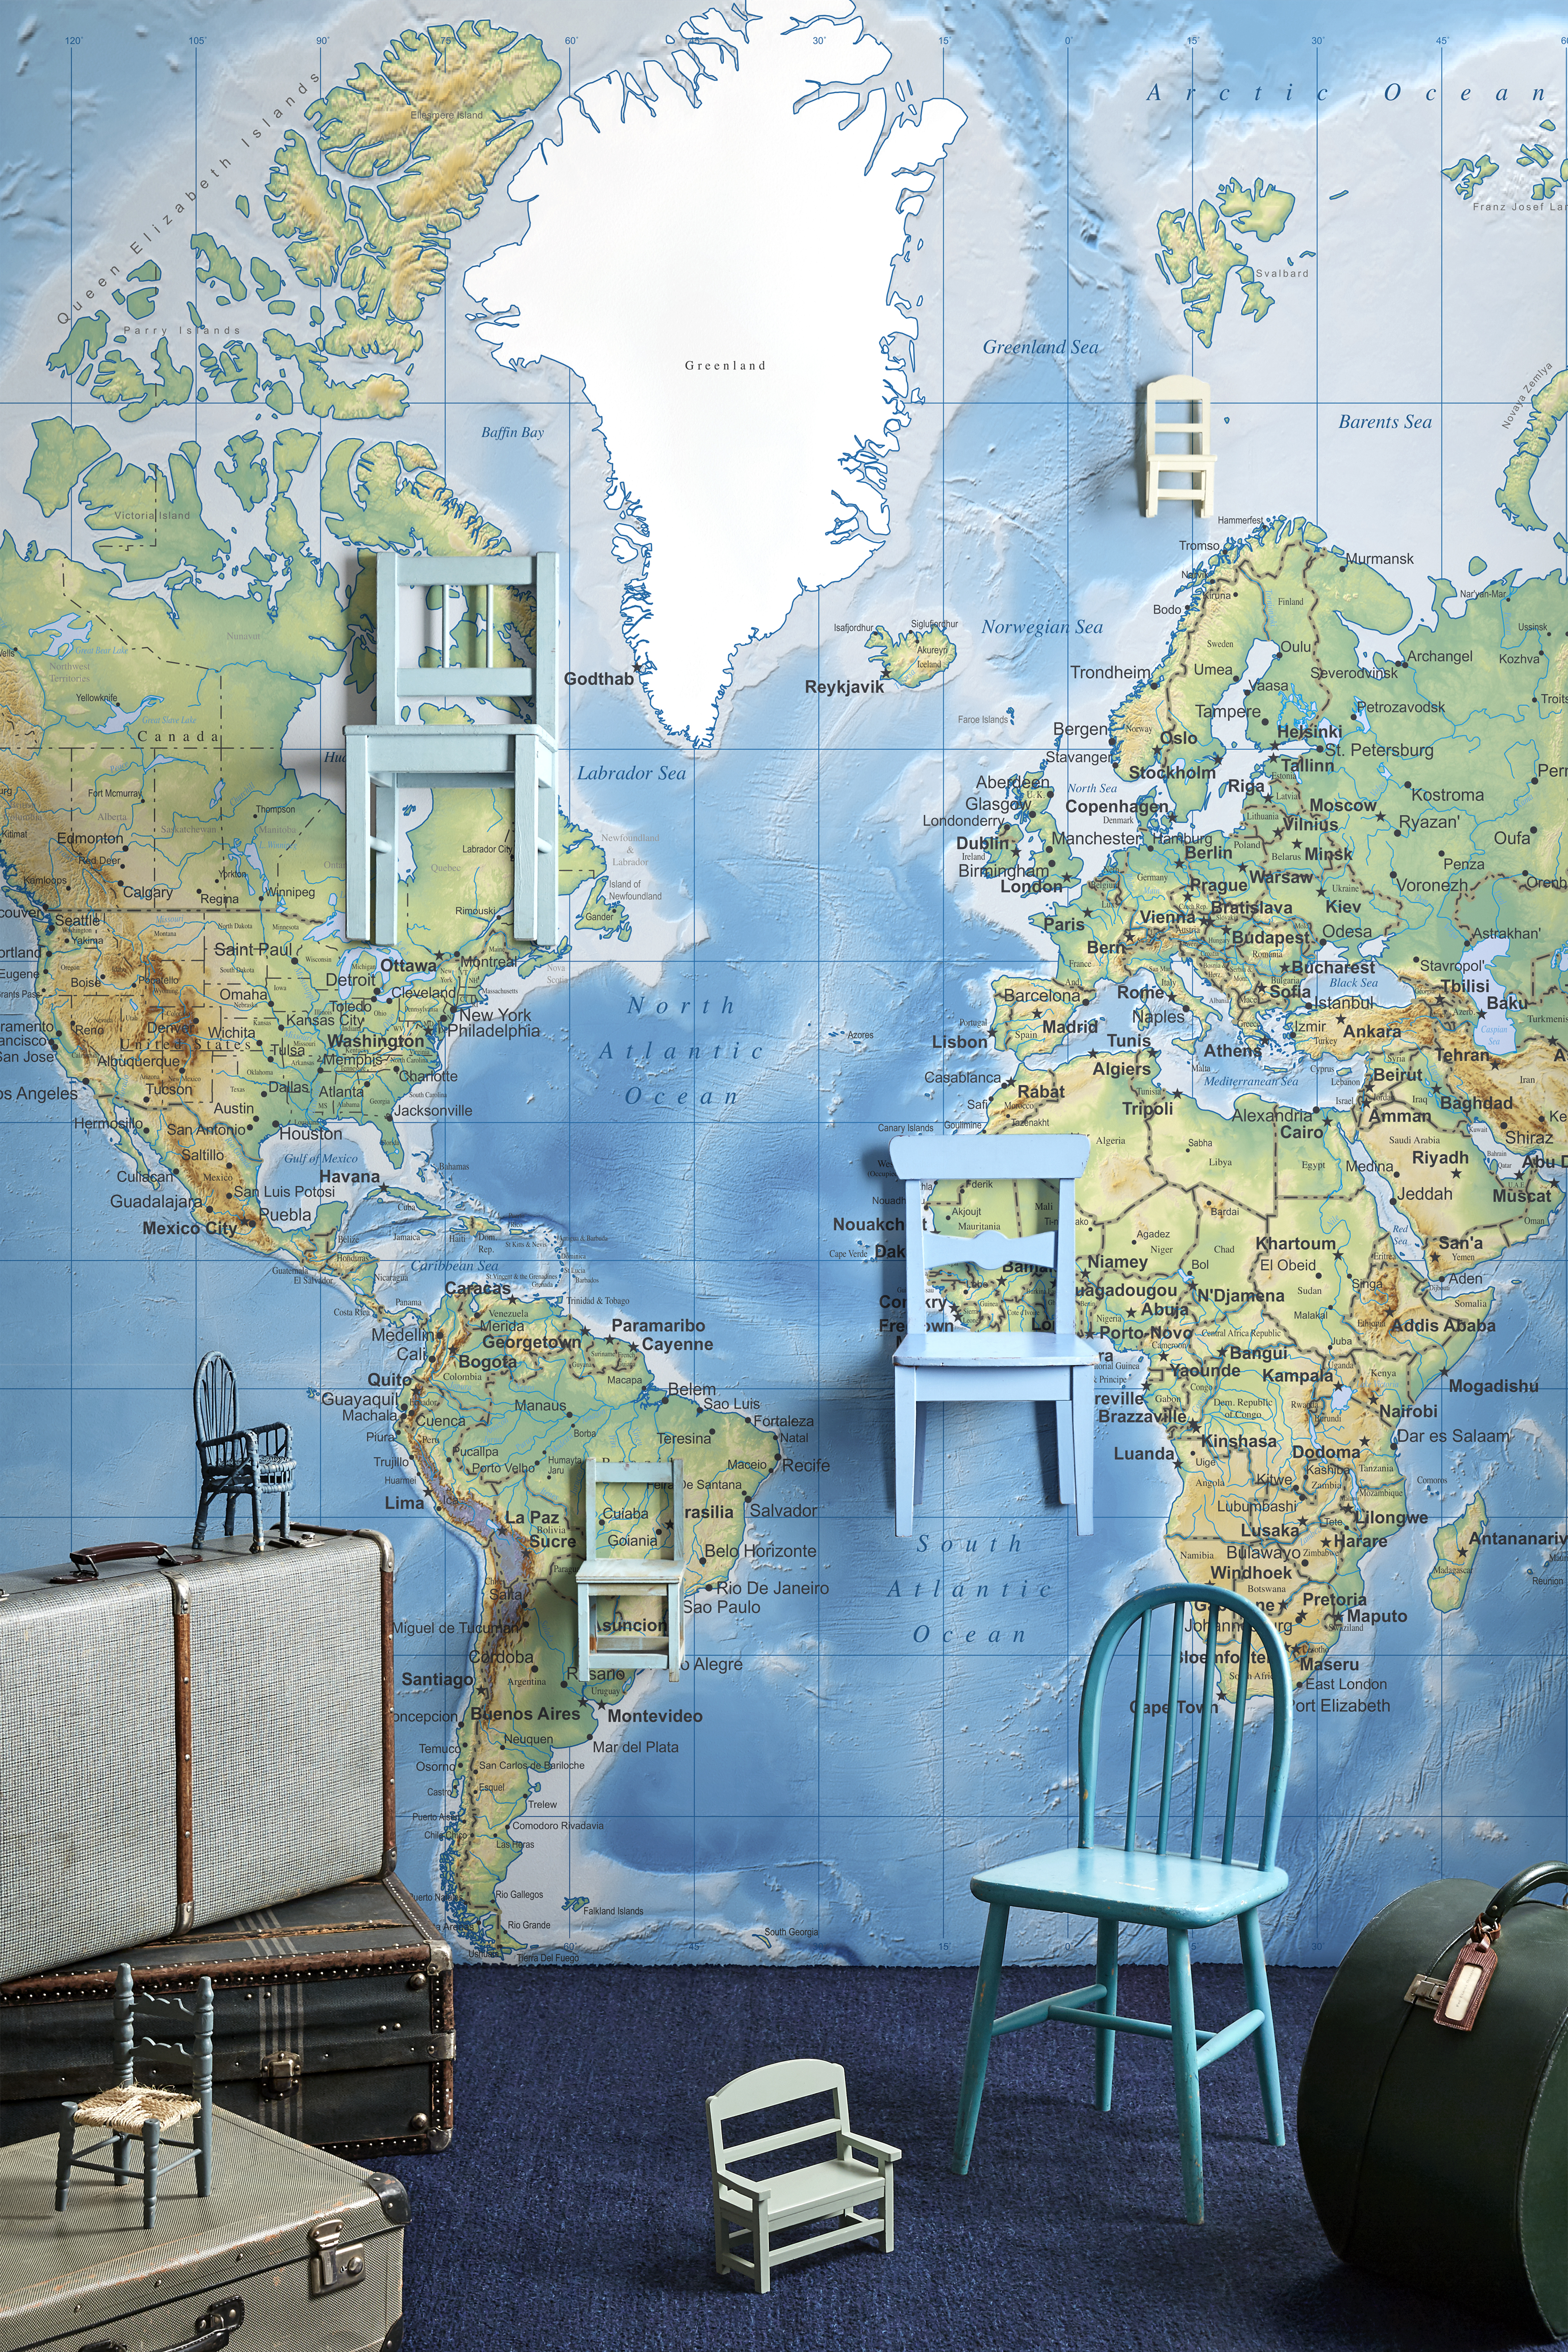 Trending the best world map murals and map wallpapers this is the world map detailed e22619 26 per m2 from photowall gumiabroncs Choice Image